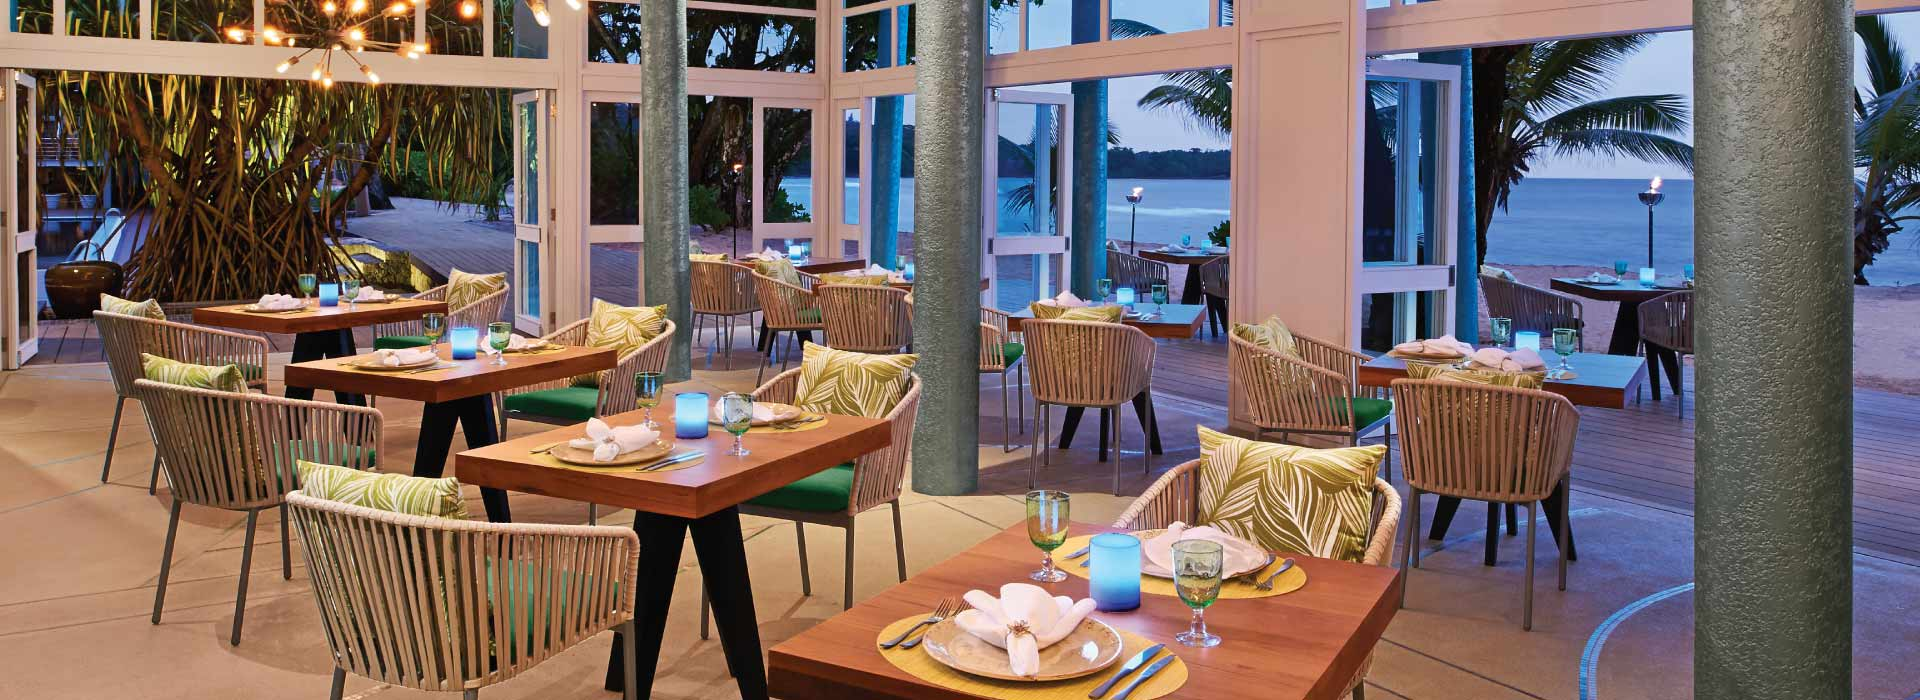 The Tamarind restaurant at AVANI Seychelles Barbarons Resort